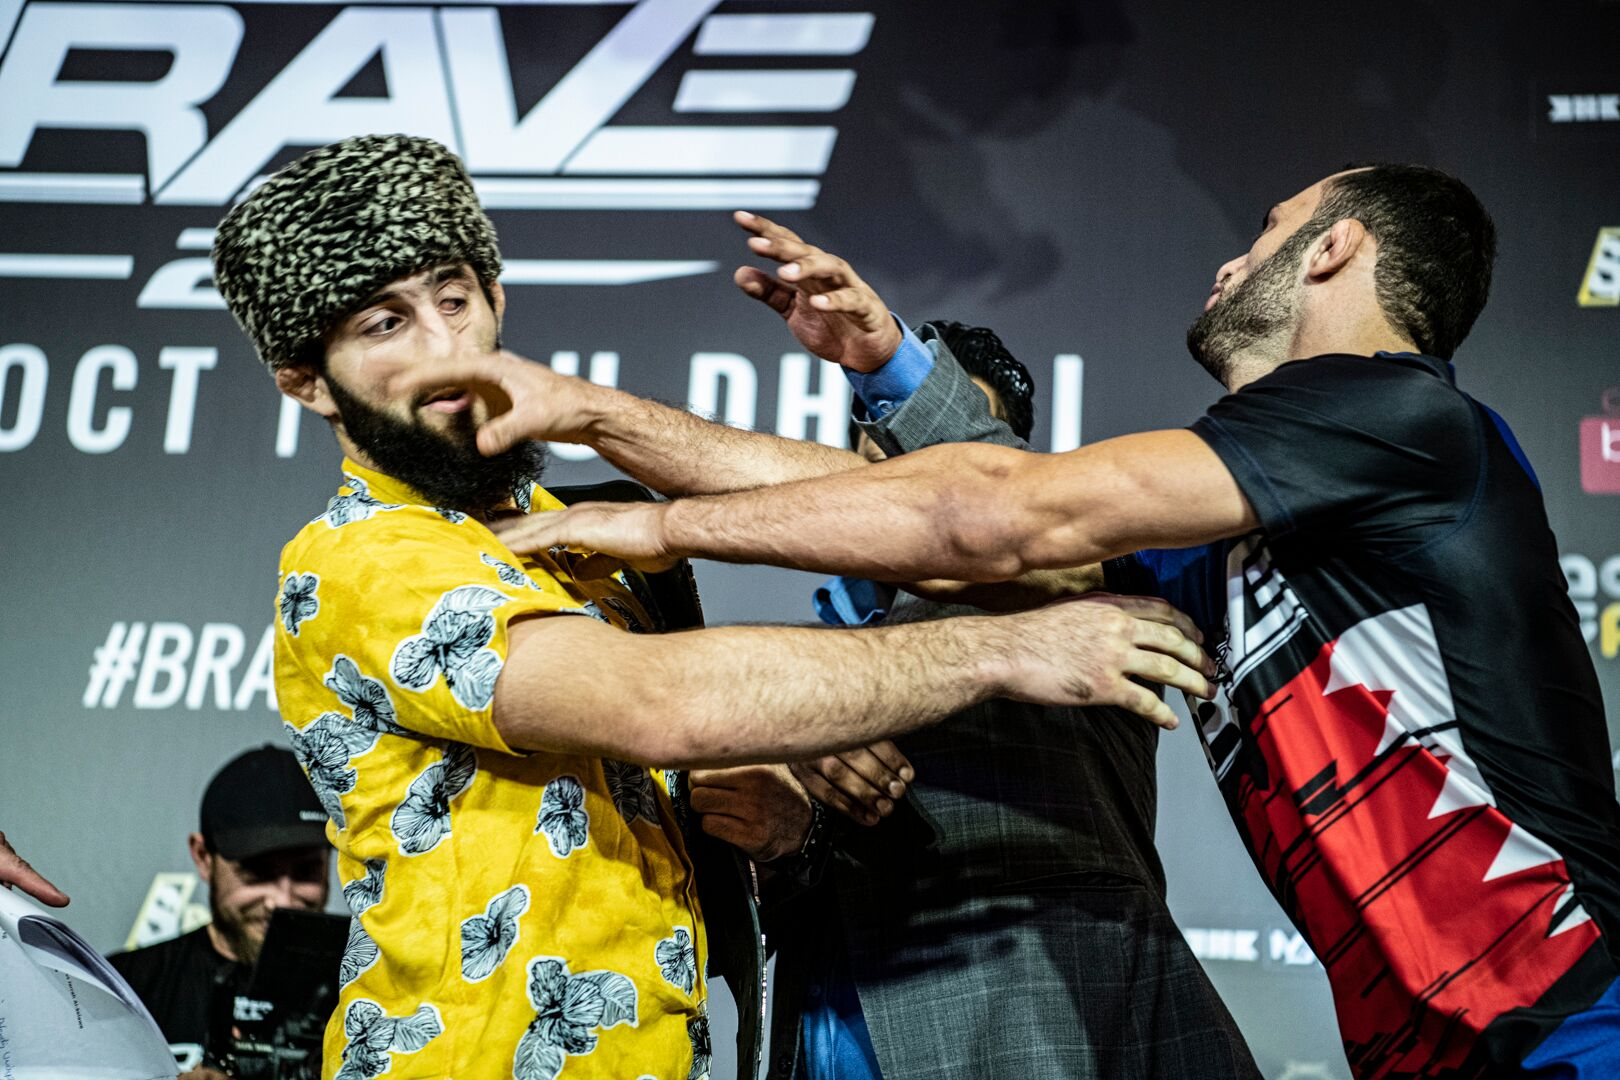 Abdoul vs Jarrah rivalry heats up, brawl erupts at BRAVE CF 27 weigh-ins - Abu Dhabi